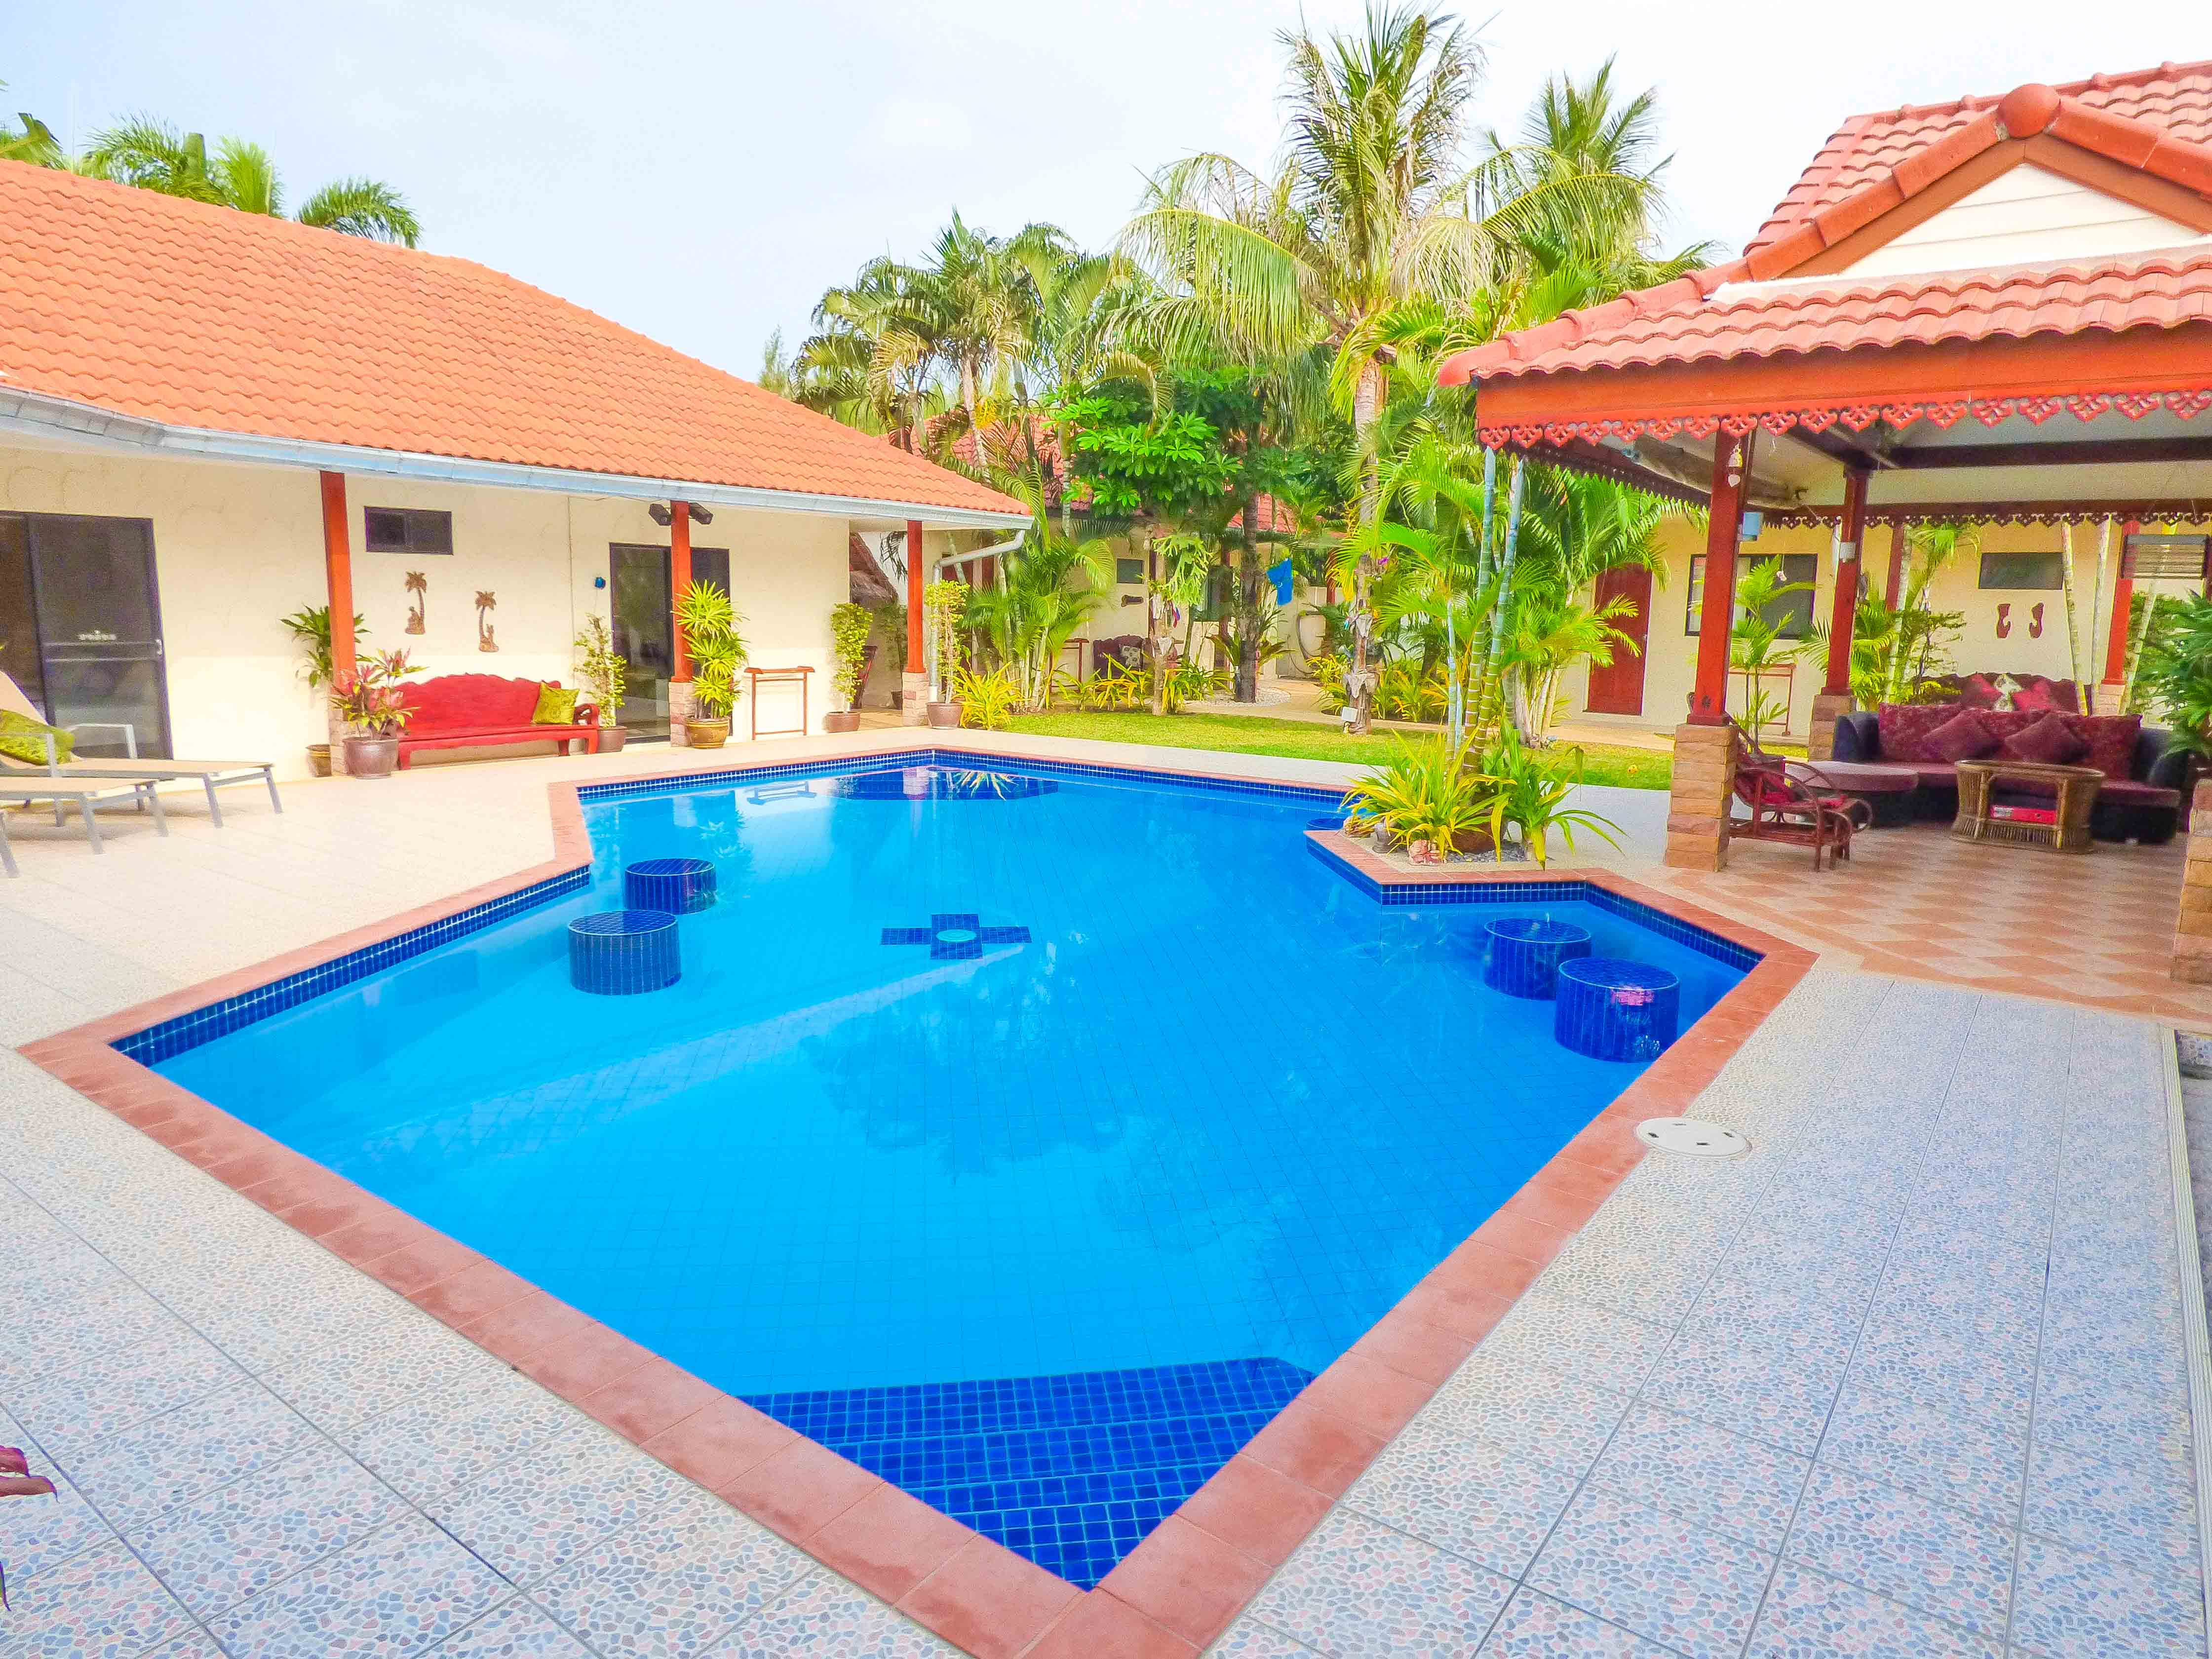 8 Bed Roomed Resort type Pool Villa 1.5 Km From Khao Kalok